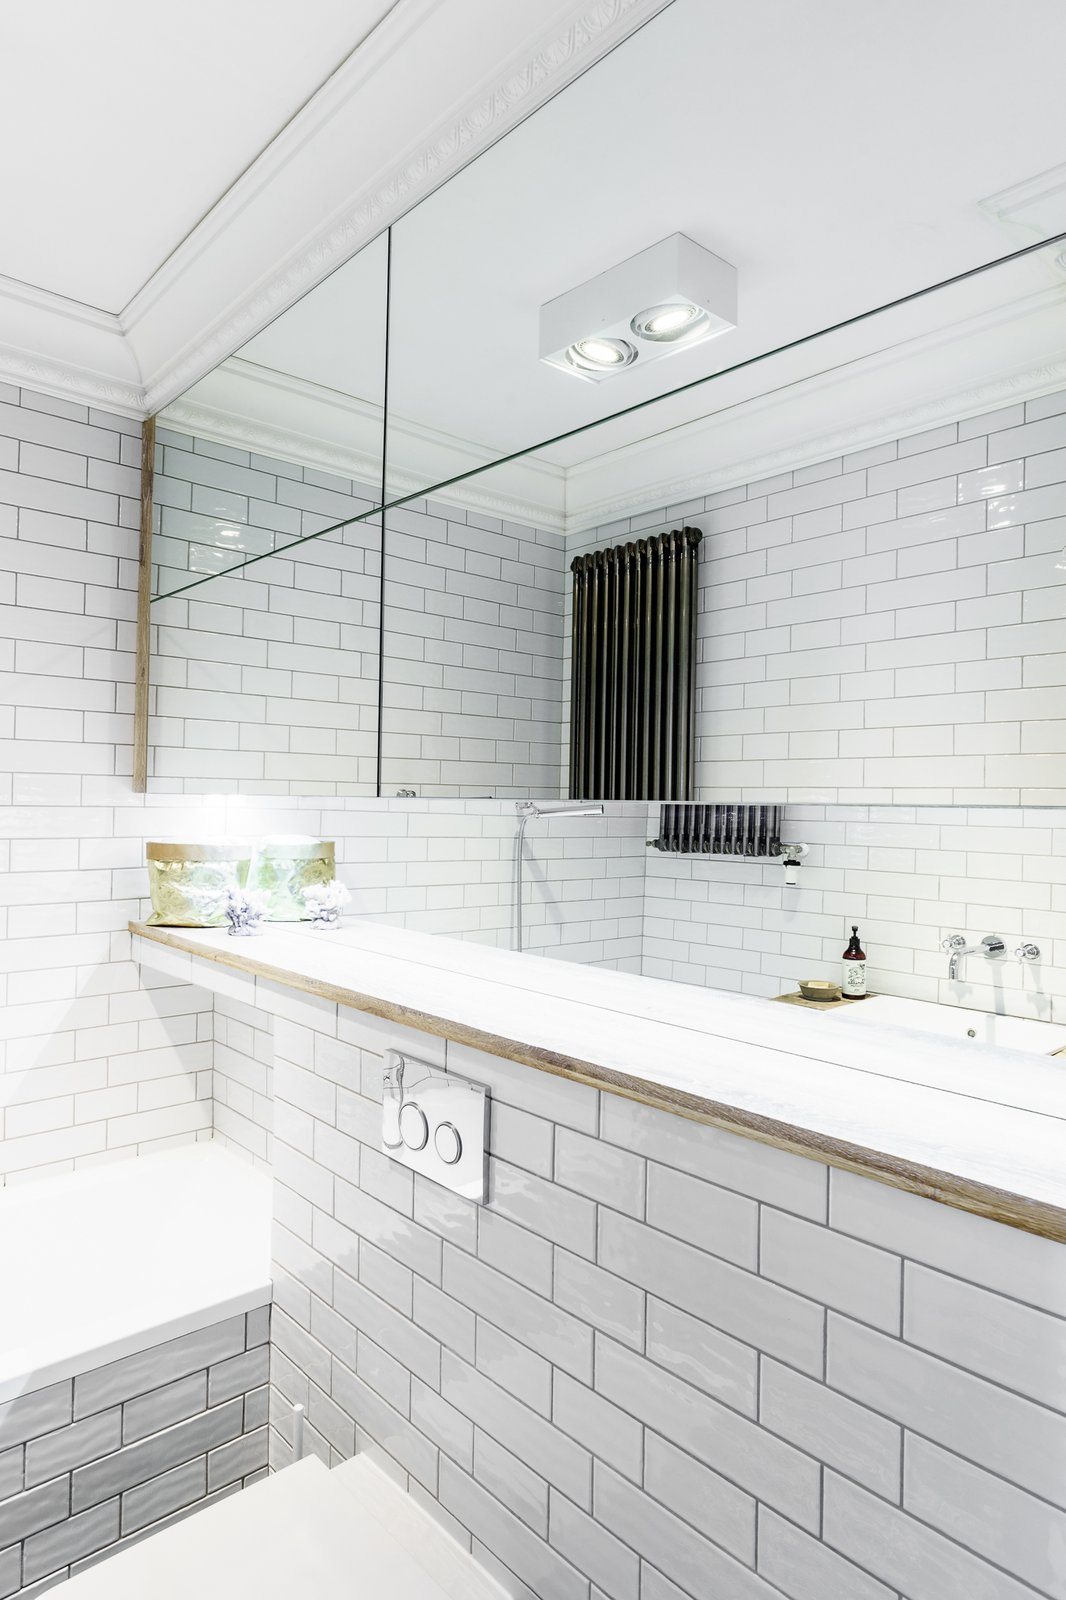 Bath Room, Engineered Quartz Counter, Ceiling Lighting, and Ceramic Tile Wall  Loft in Poland